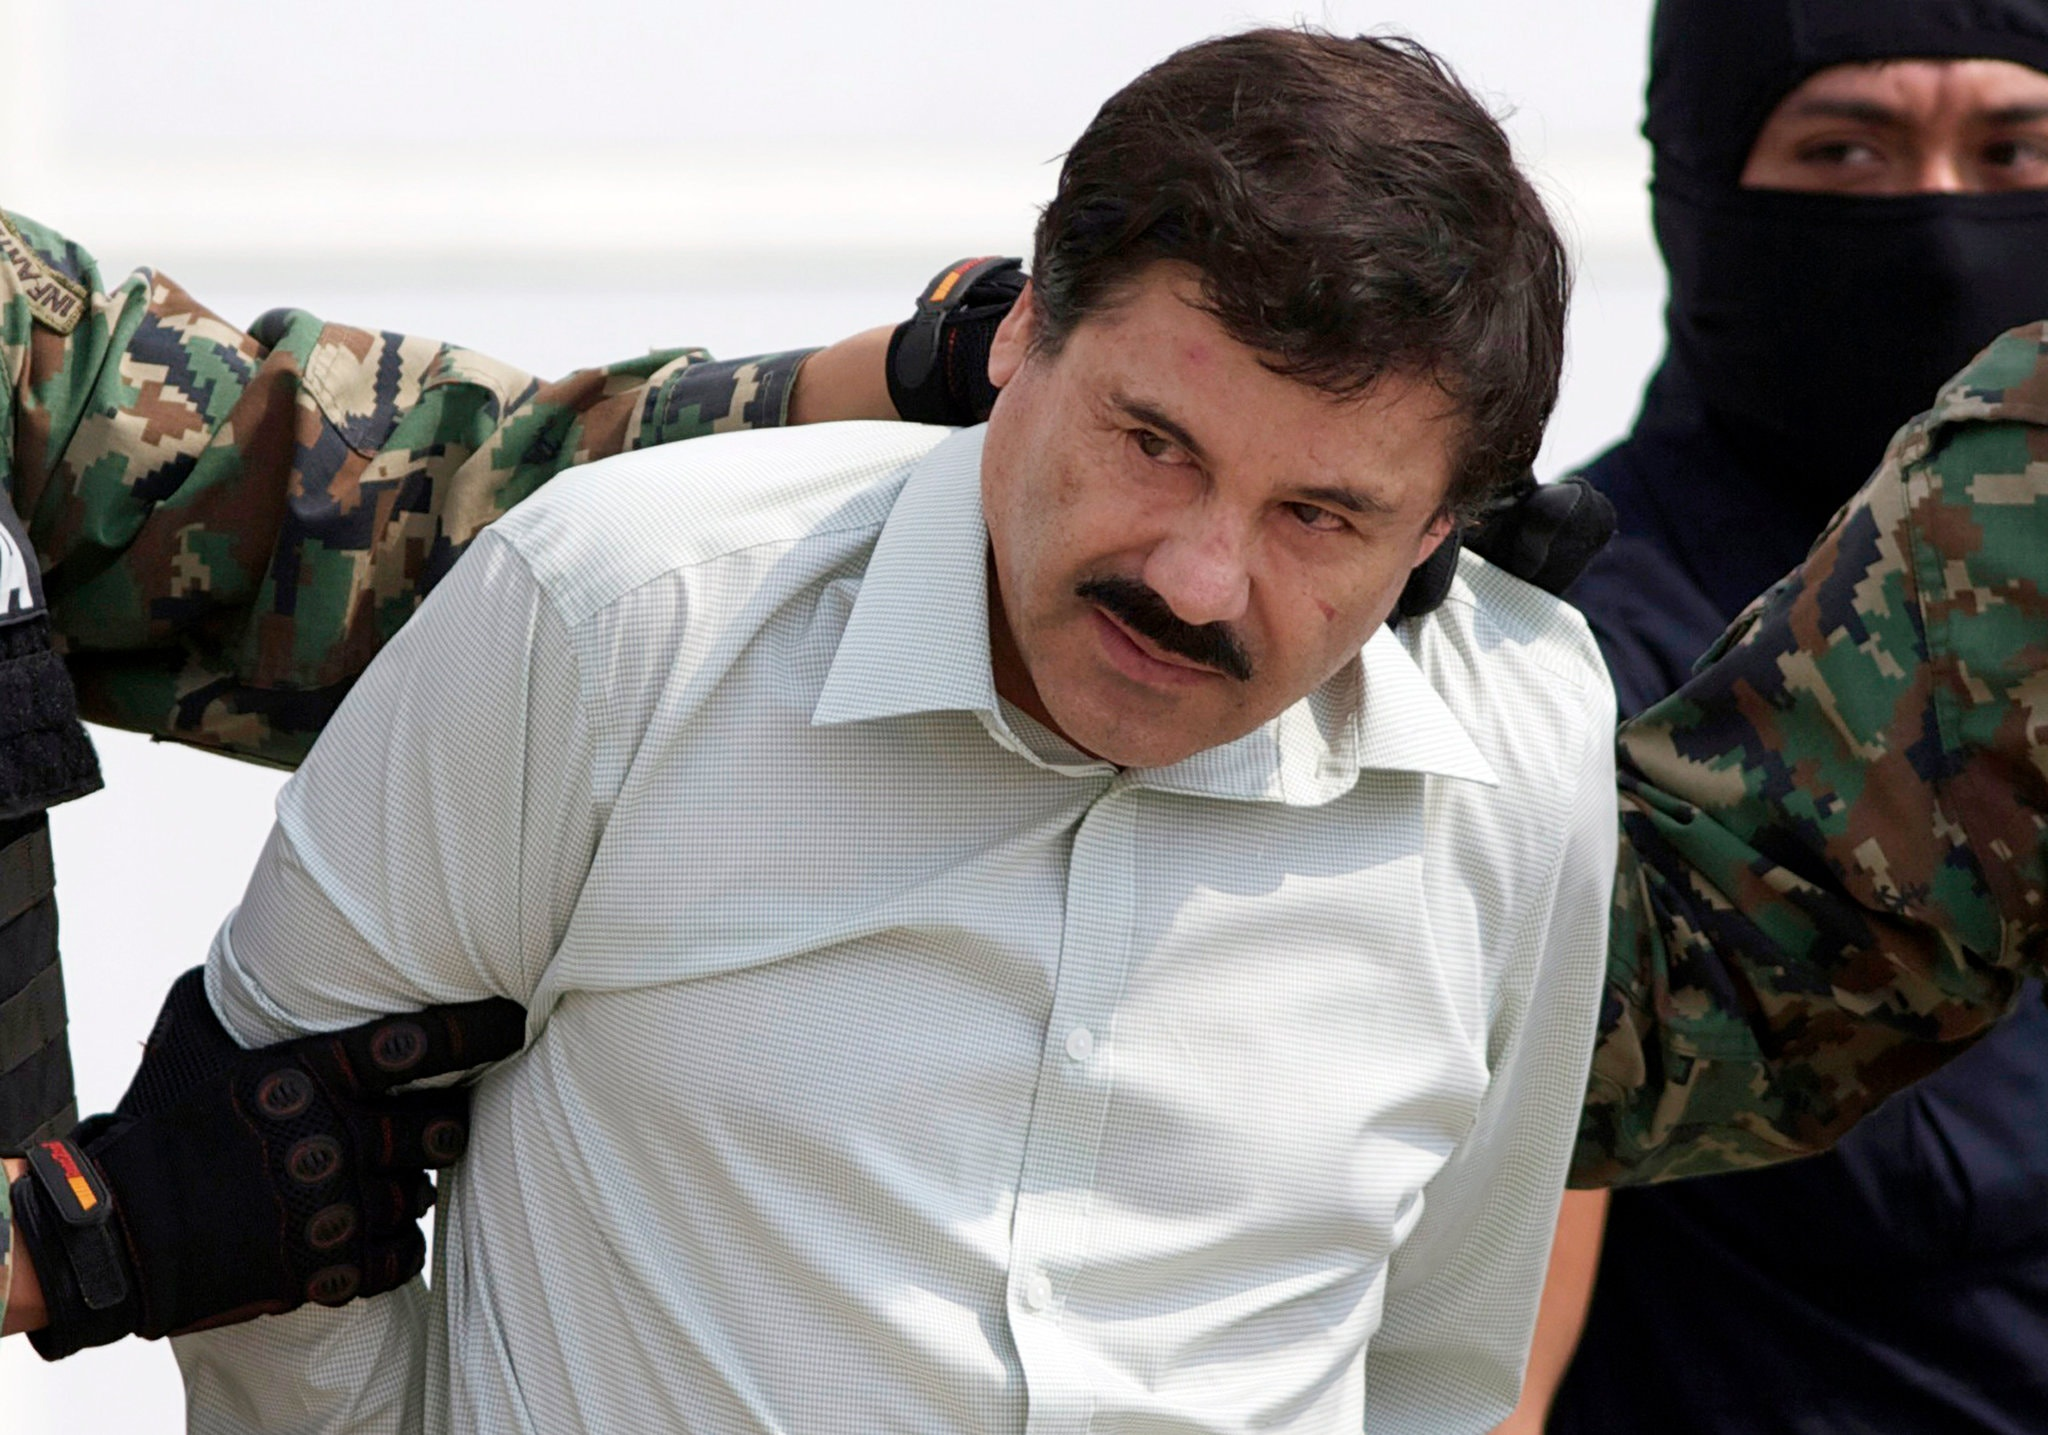 Joaquín Guzmán Loera, known as El Chapo, broke out of prison twice in Mexico before being extradited to the United States. Credit Eduardo Verdugo/Associated Press